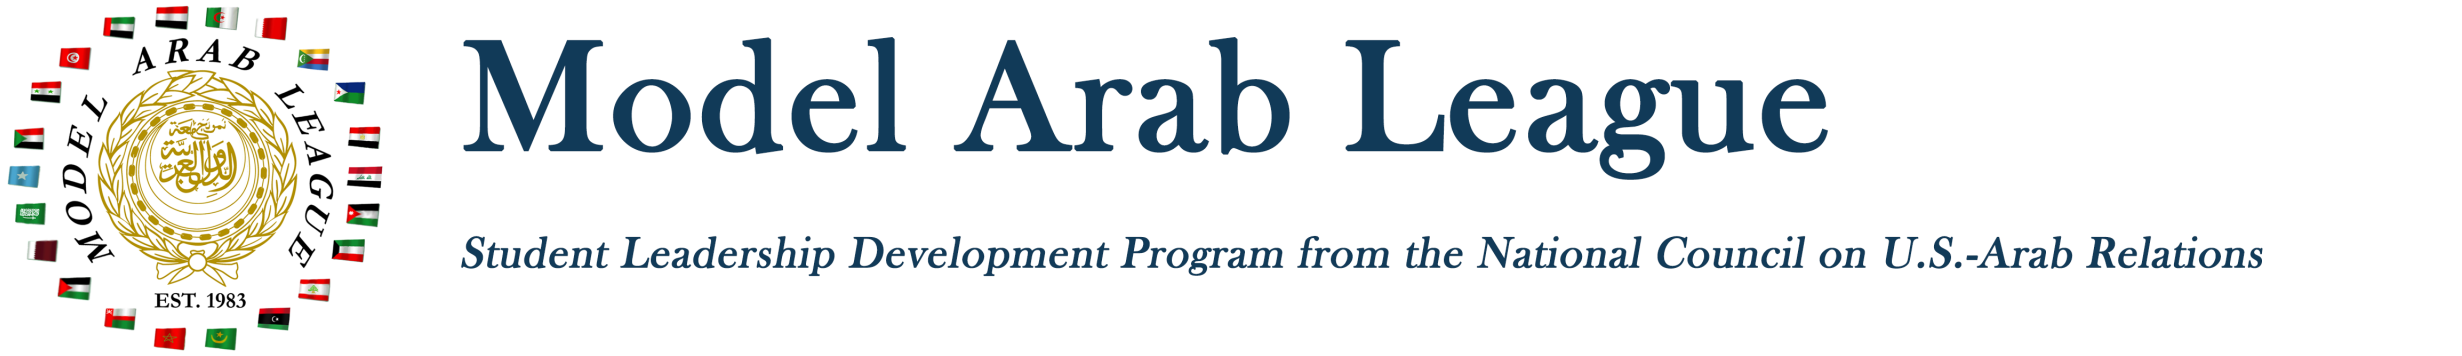 Model Arab League Youth Leadership Development Program